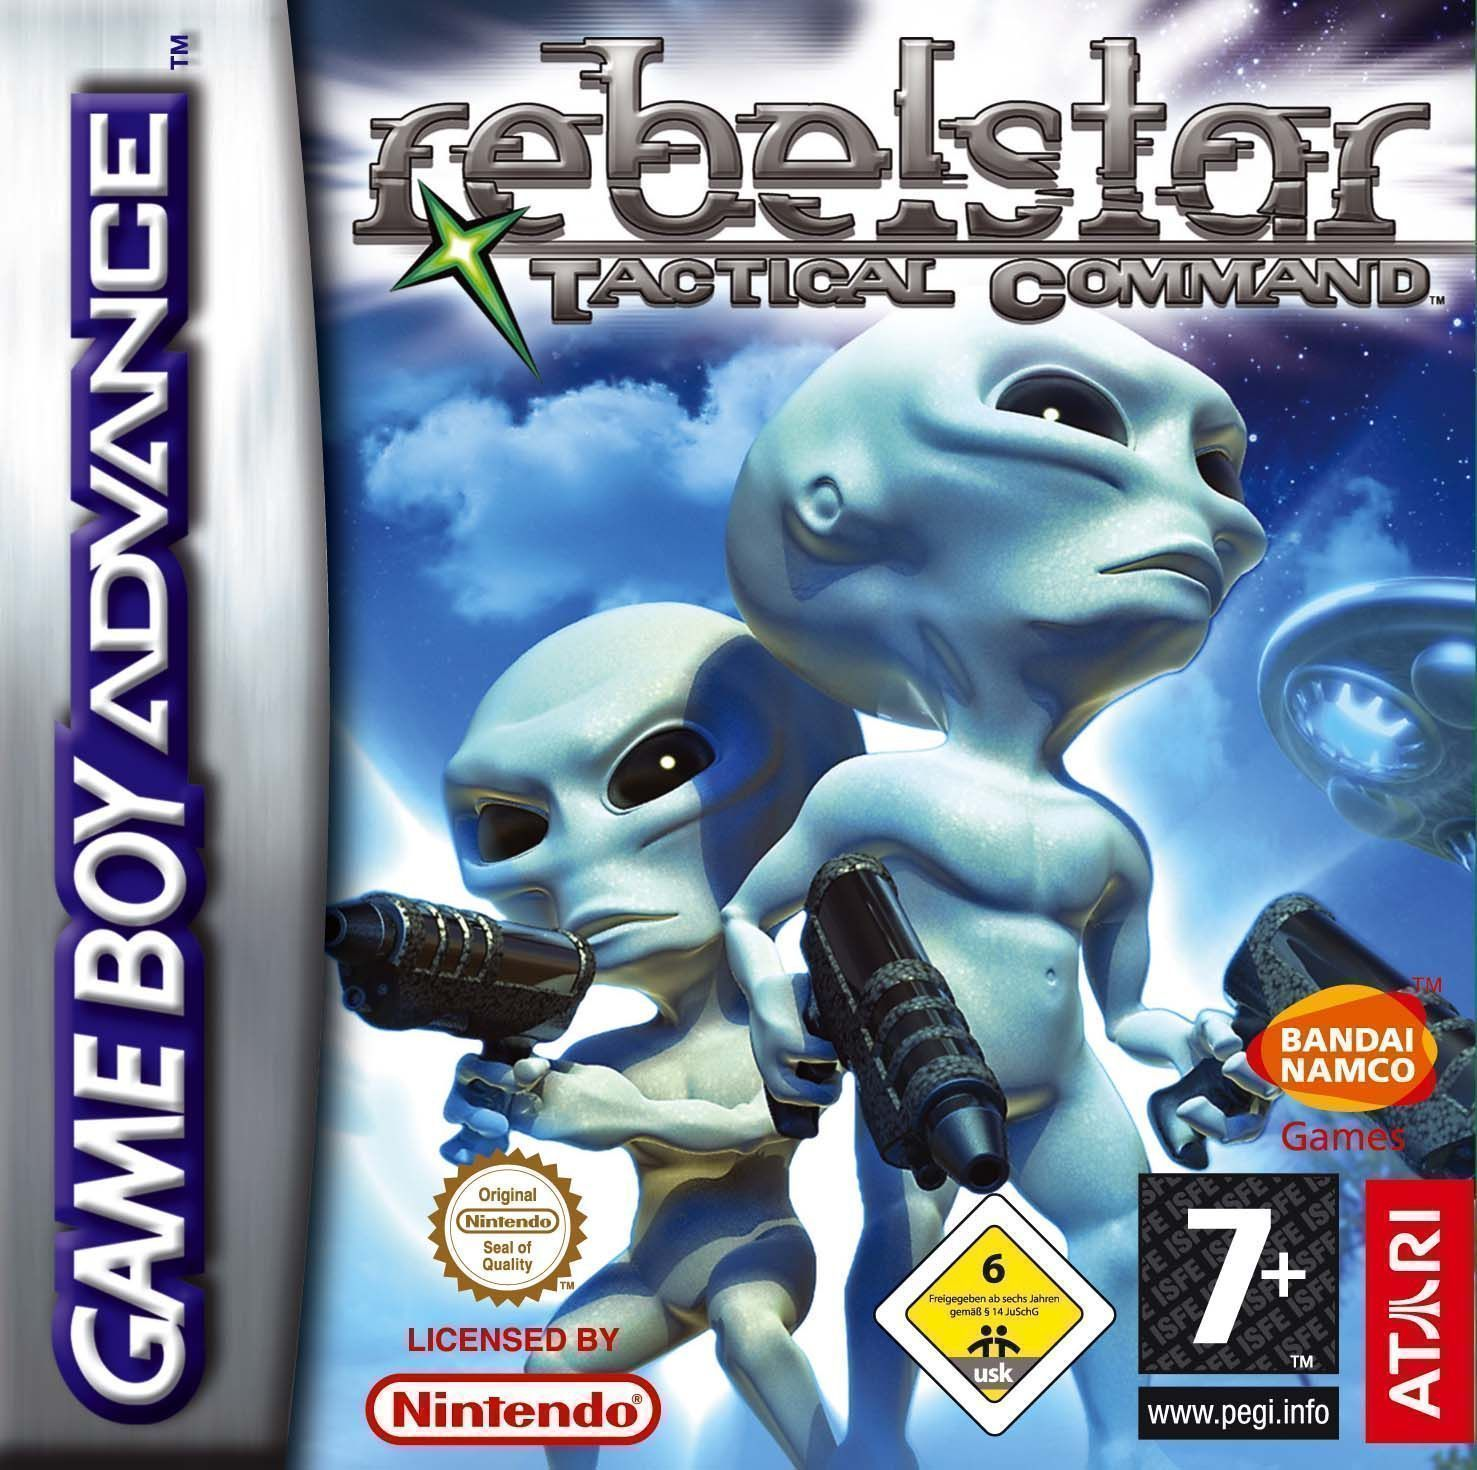 Pokemon Emerald Rom Rebelstar Tactical Command Gameboy Advance Gba Rom